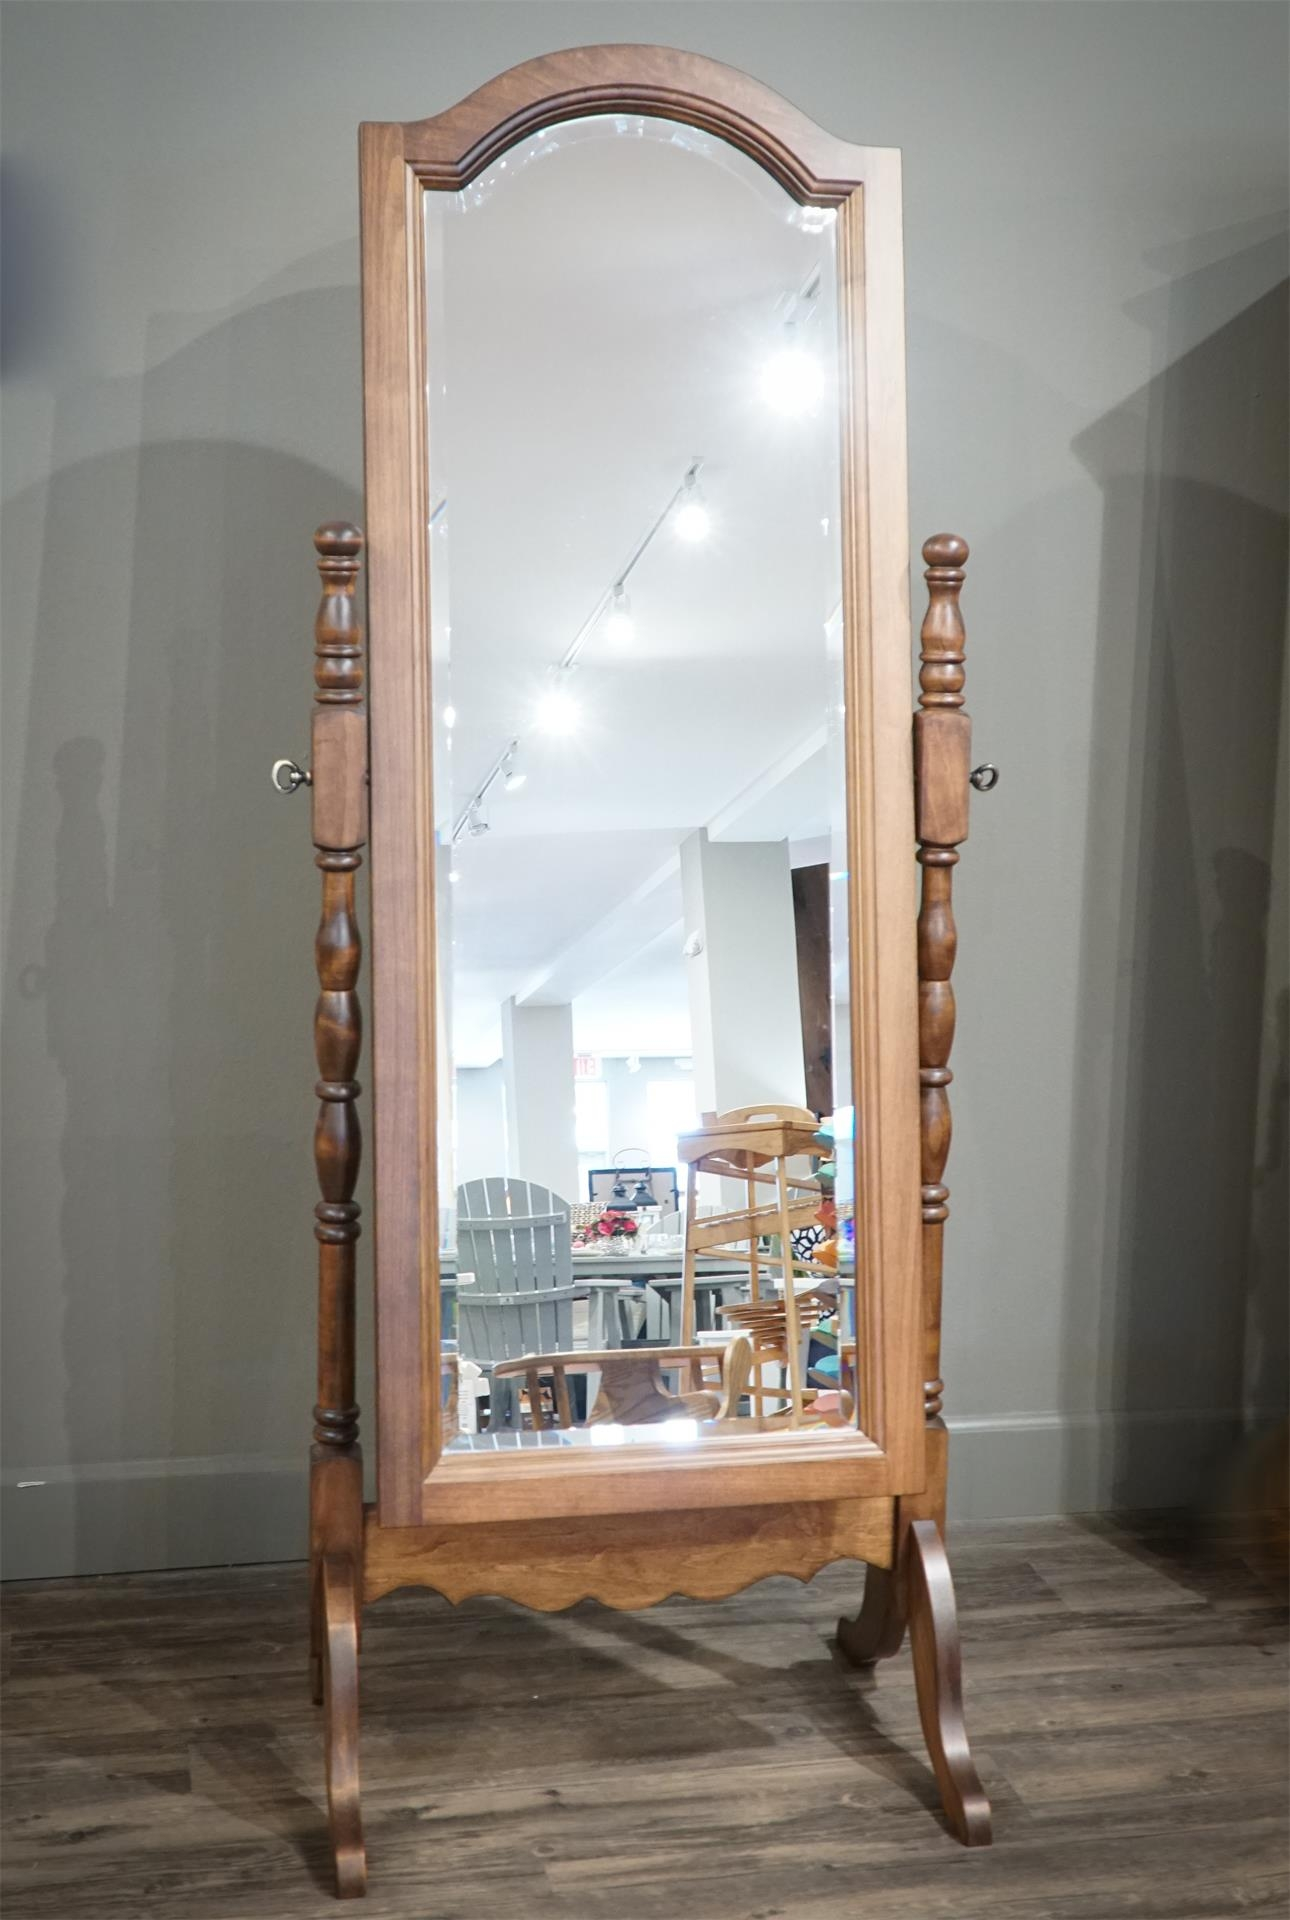 Amish Full Length Victorian Style Floor Mirror Regarding Victorian Floor Mirror (Image 1 of 15)